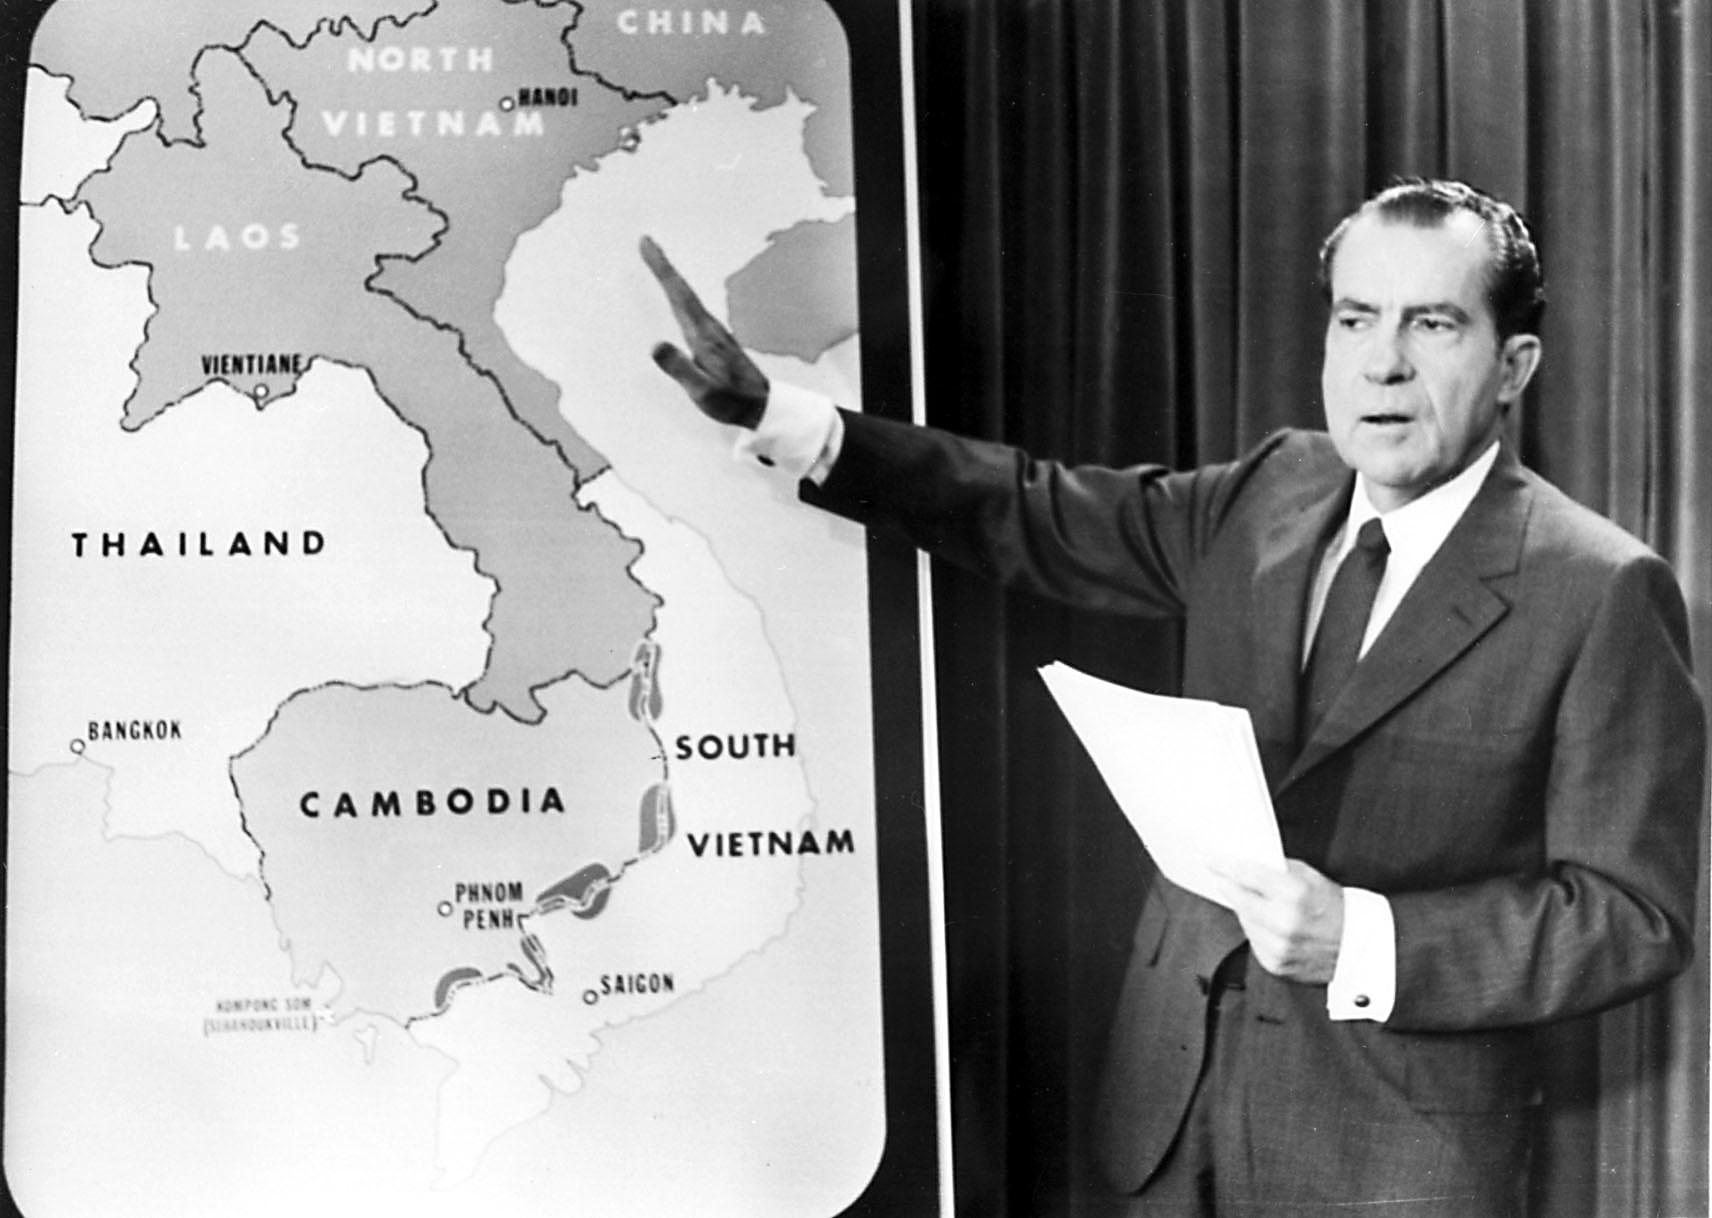 President Nixon's invasion of Cambodia 50 years ago spurred Congress to act  - The Washington Post